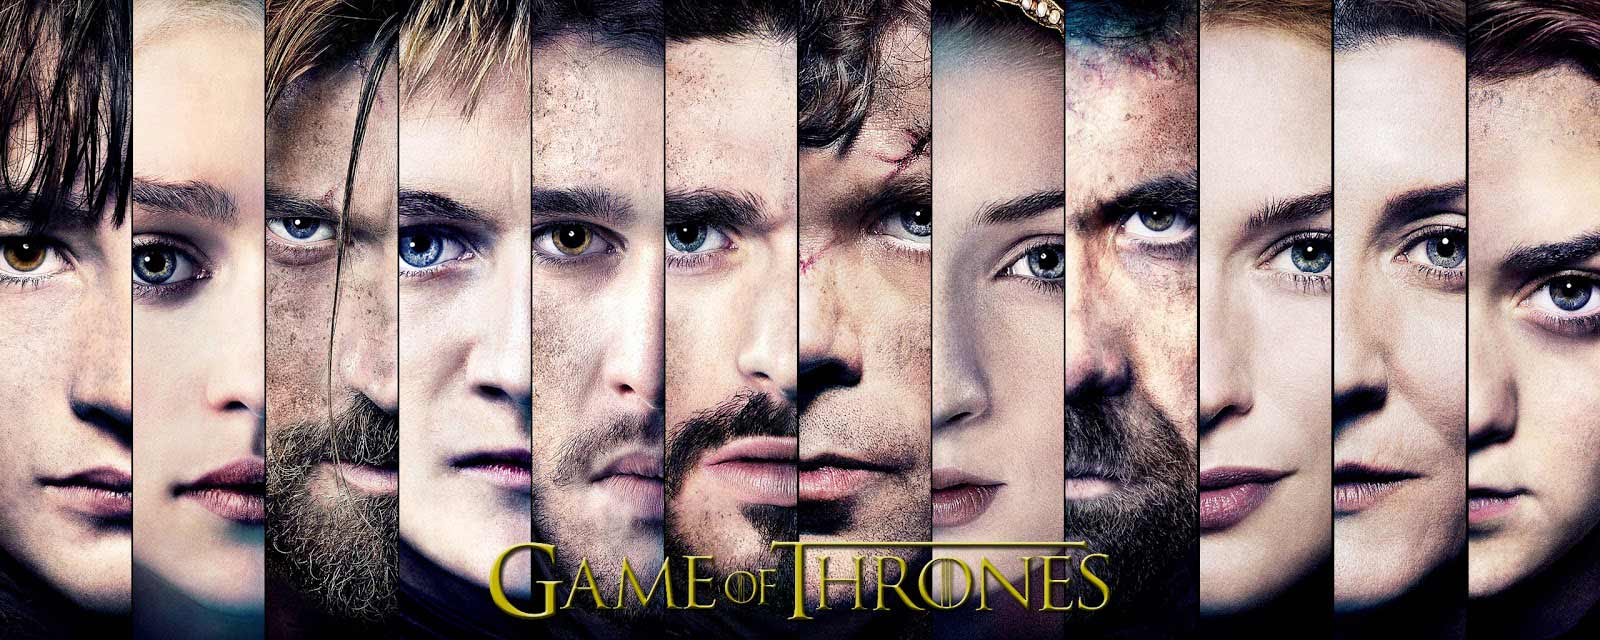 13 things you didnt know about game of thrones